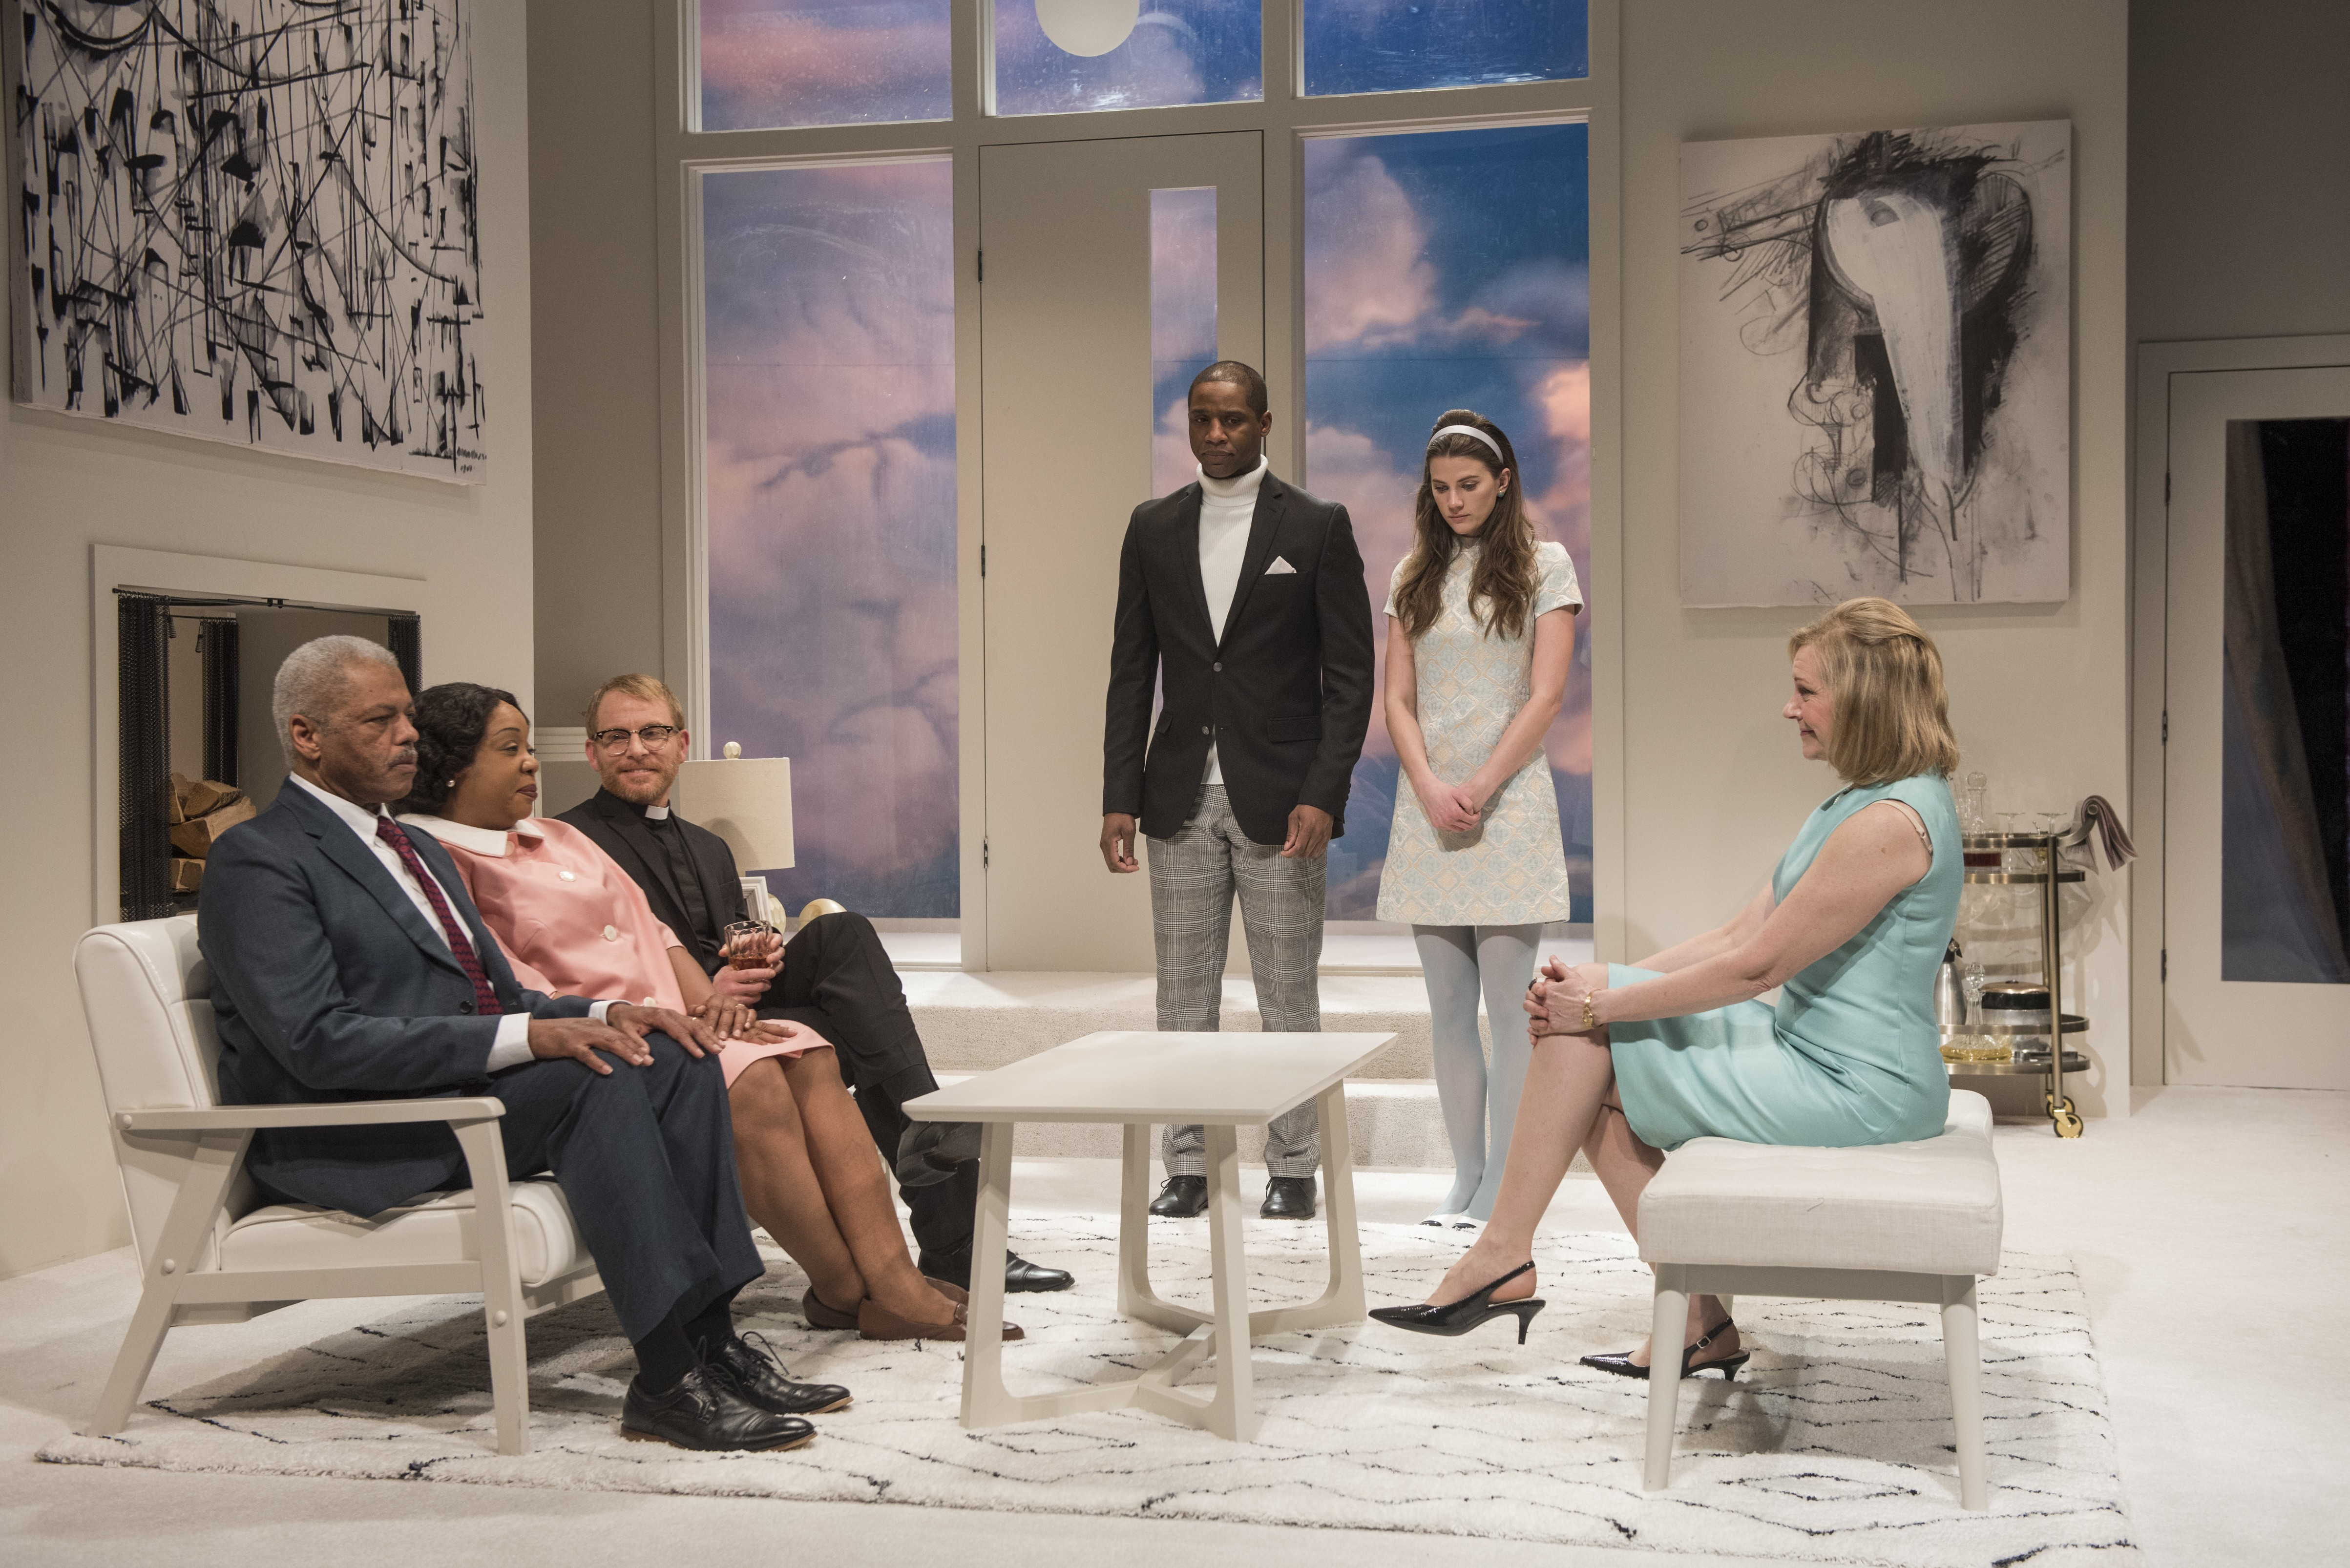 Civil rights interracial theatre plays